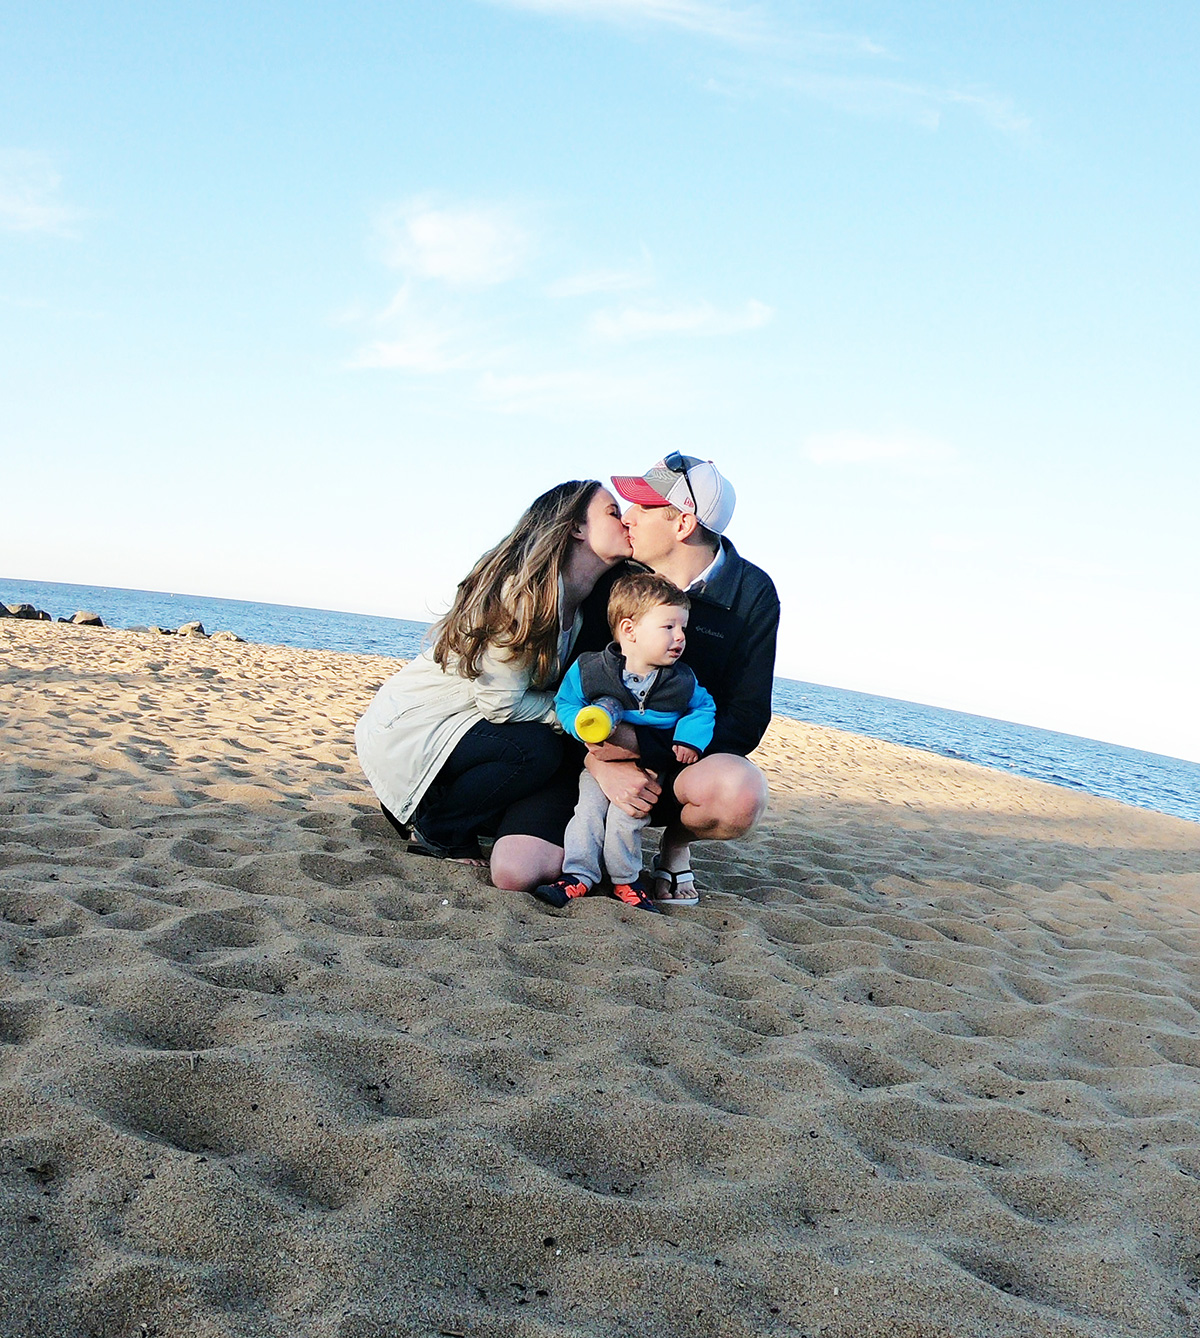 Plum Island Beach: The One Massachusetts Town Every Family Should Visit In